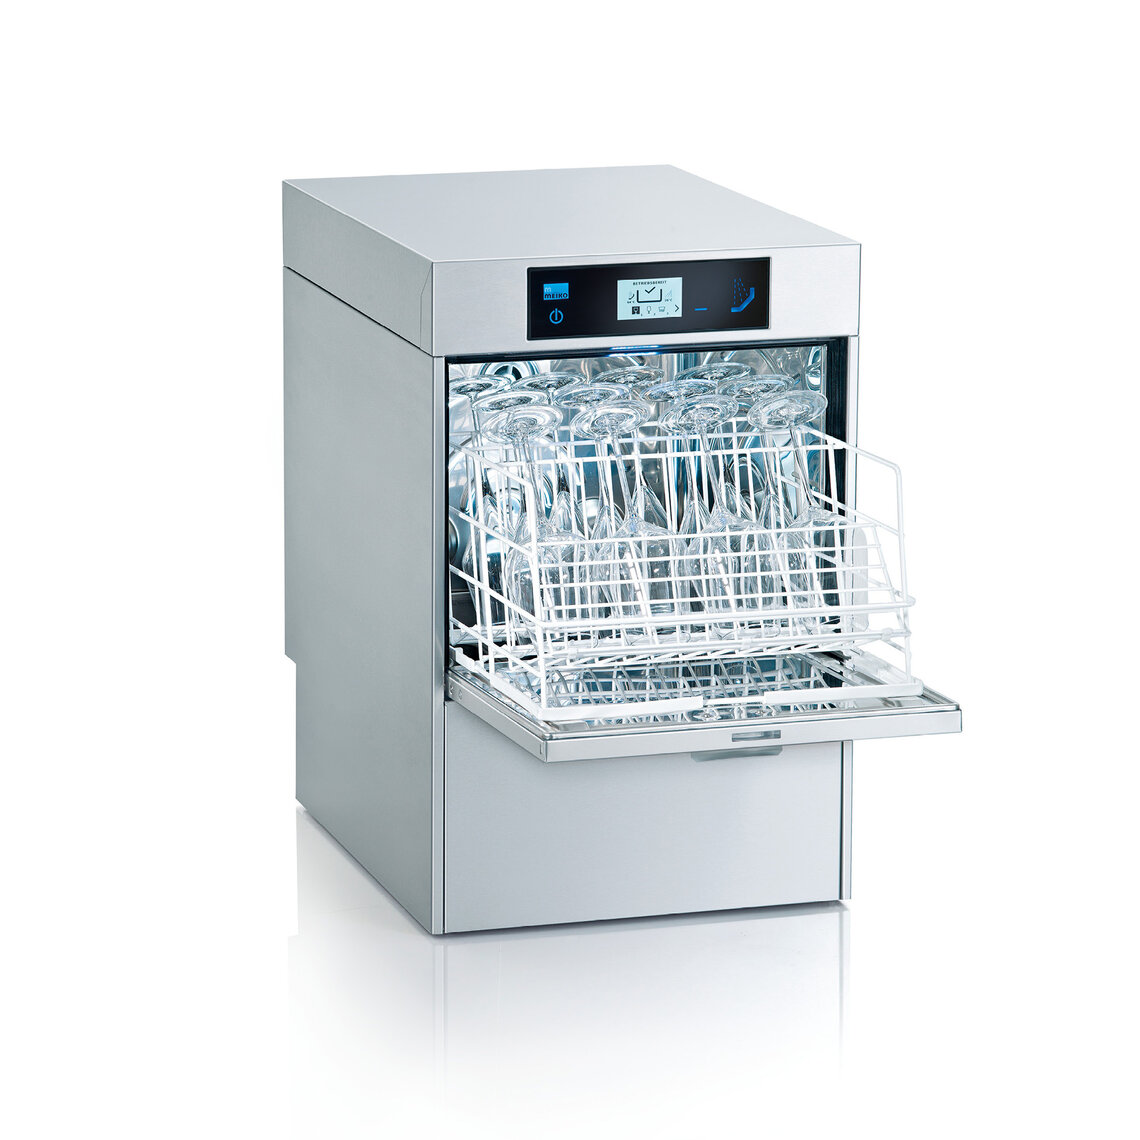 Technical Data of the small commercial dishwasher - MEIKO